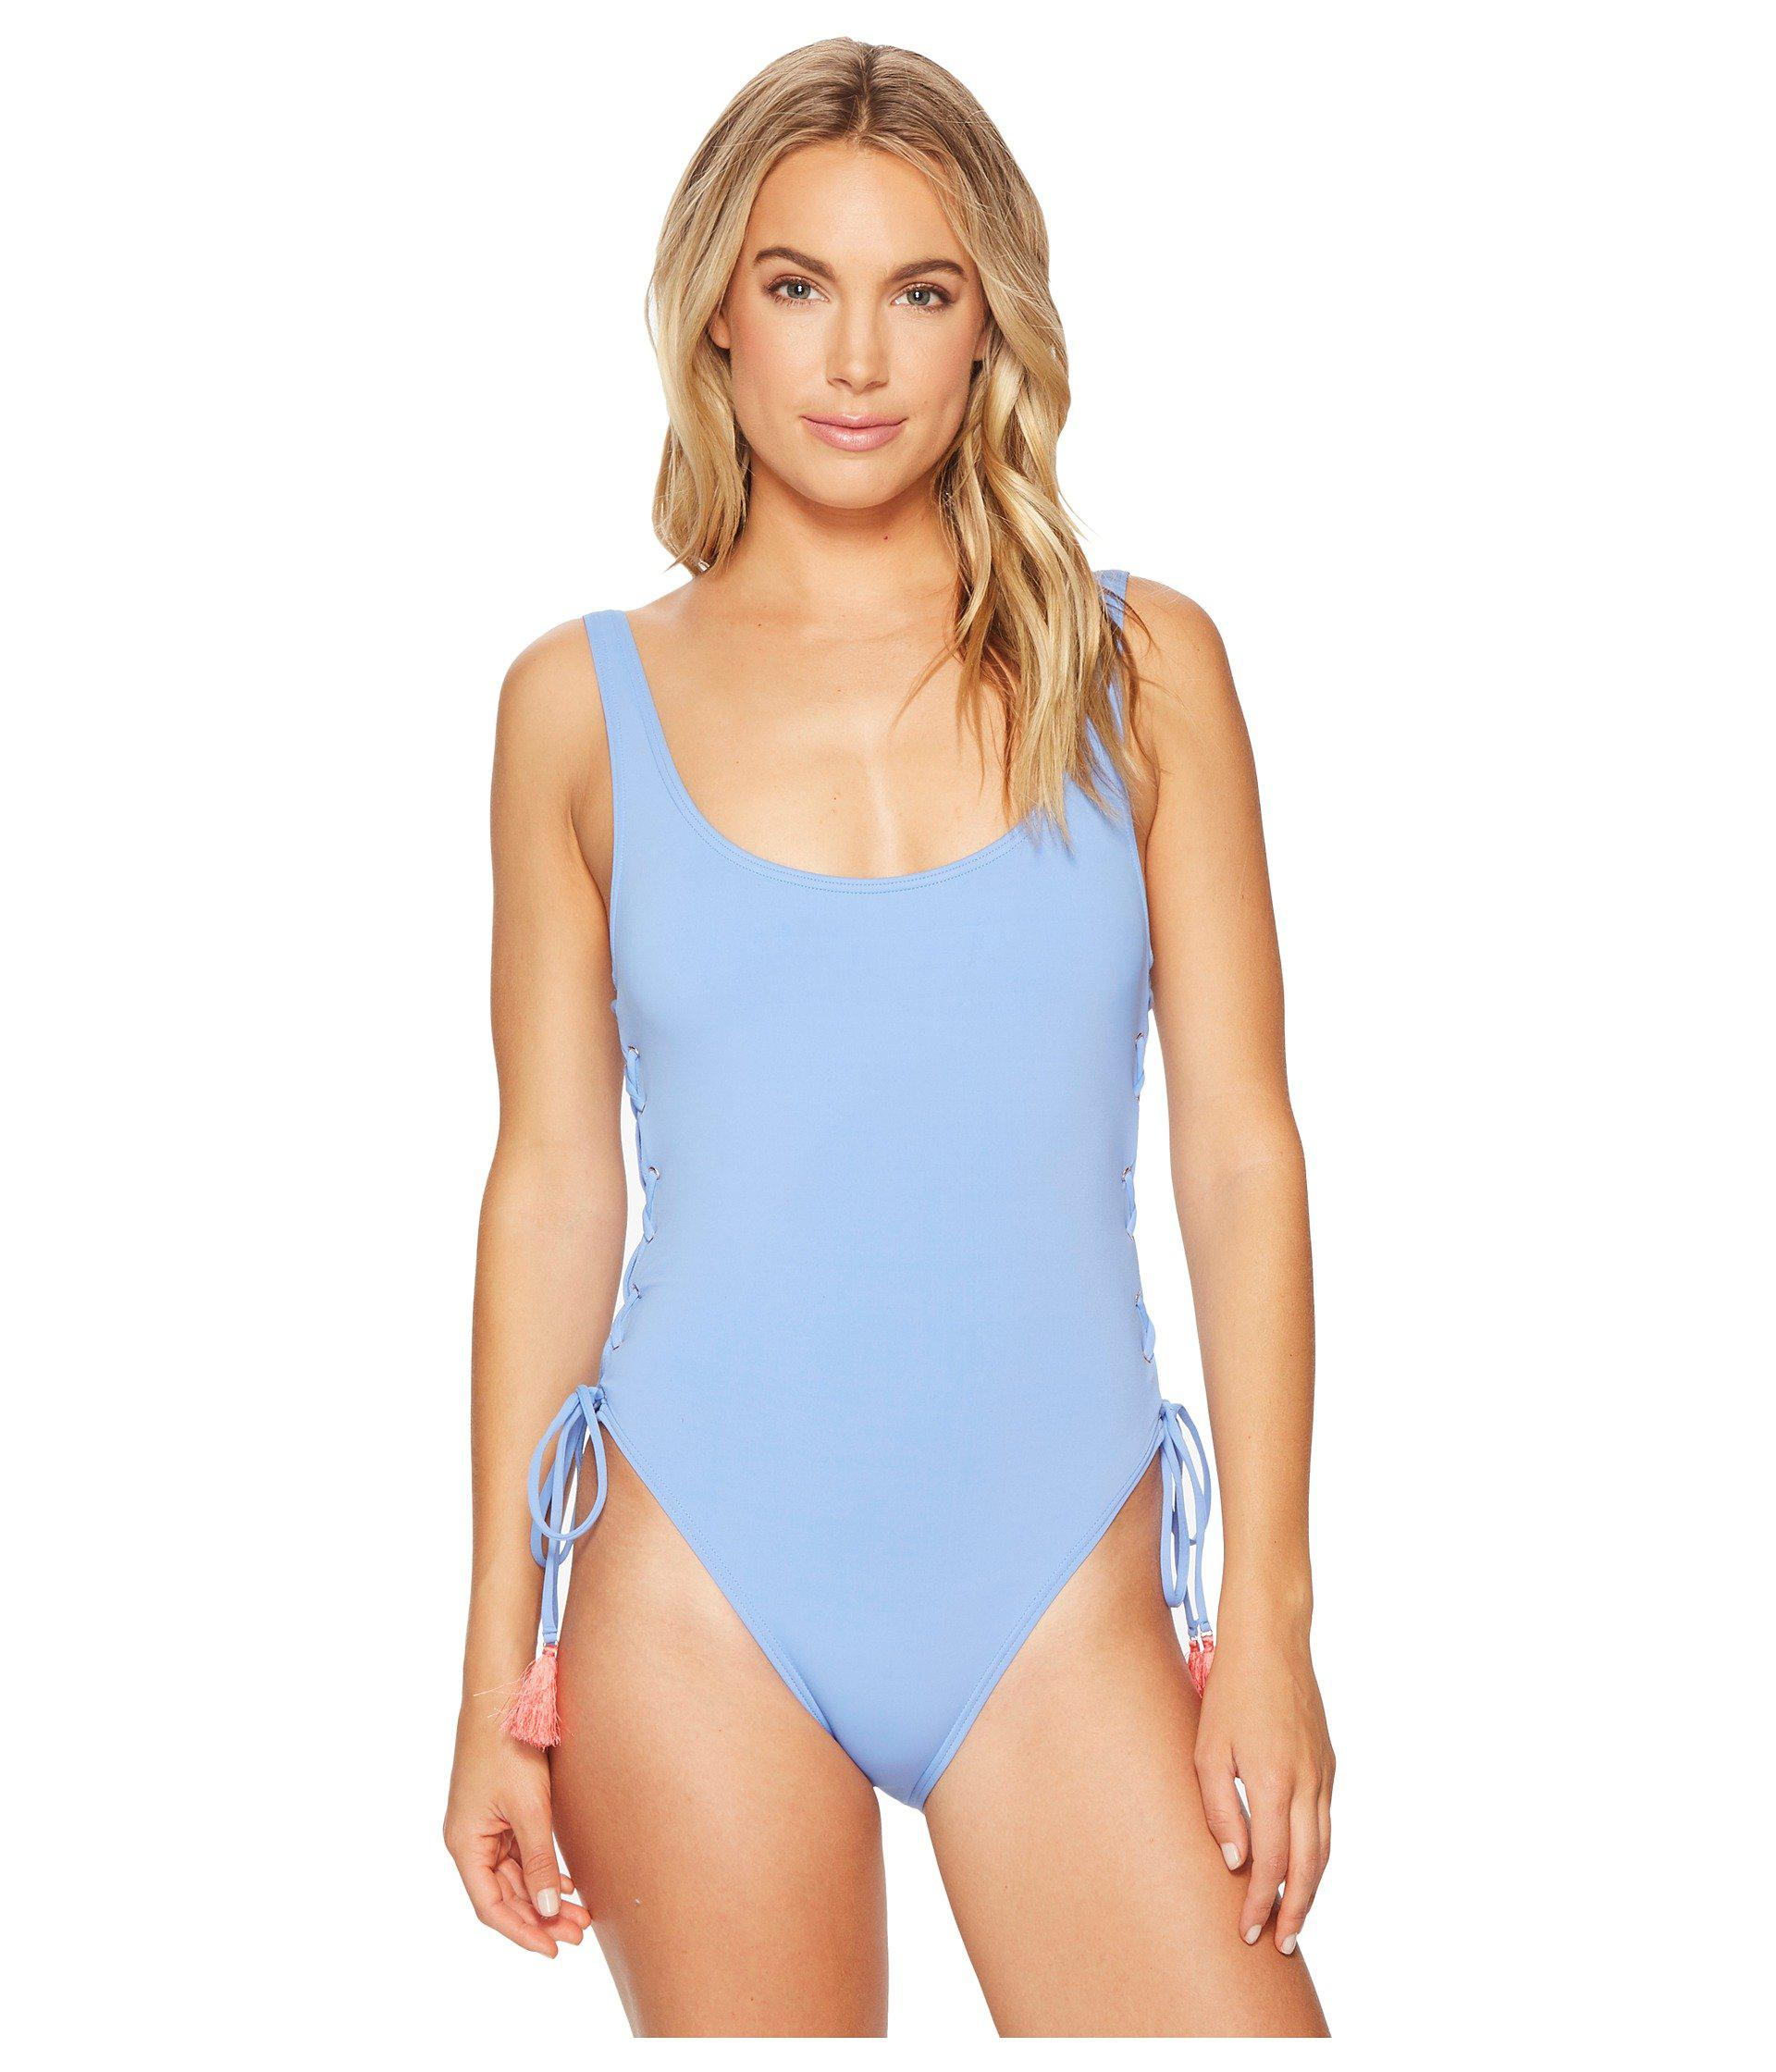 4cdcb609cca1c Vince Camuto. Women s Blue Riviera Solids Lace-up U-neck One-piece Swimsuit  W  Removable Soft Cups